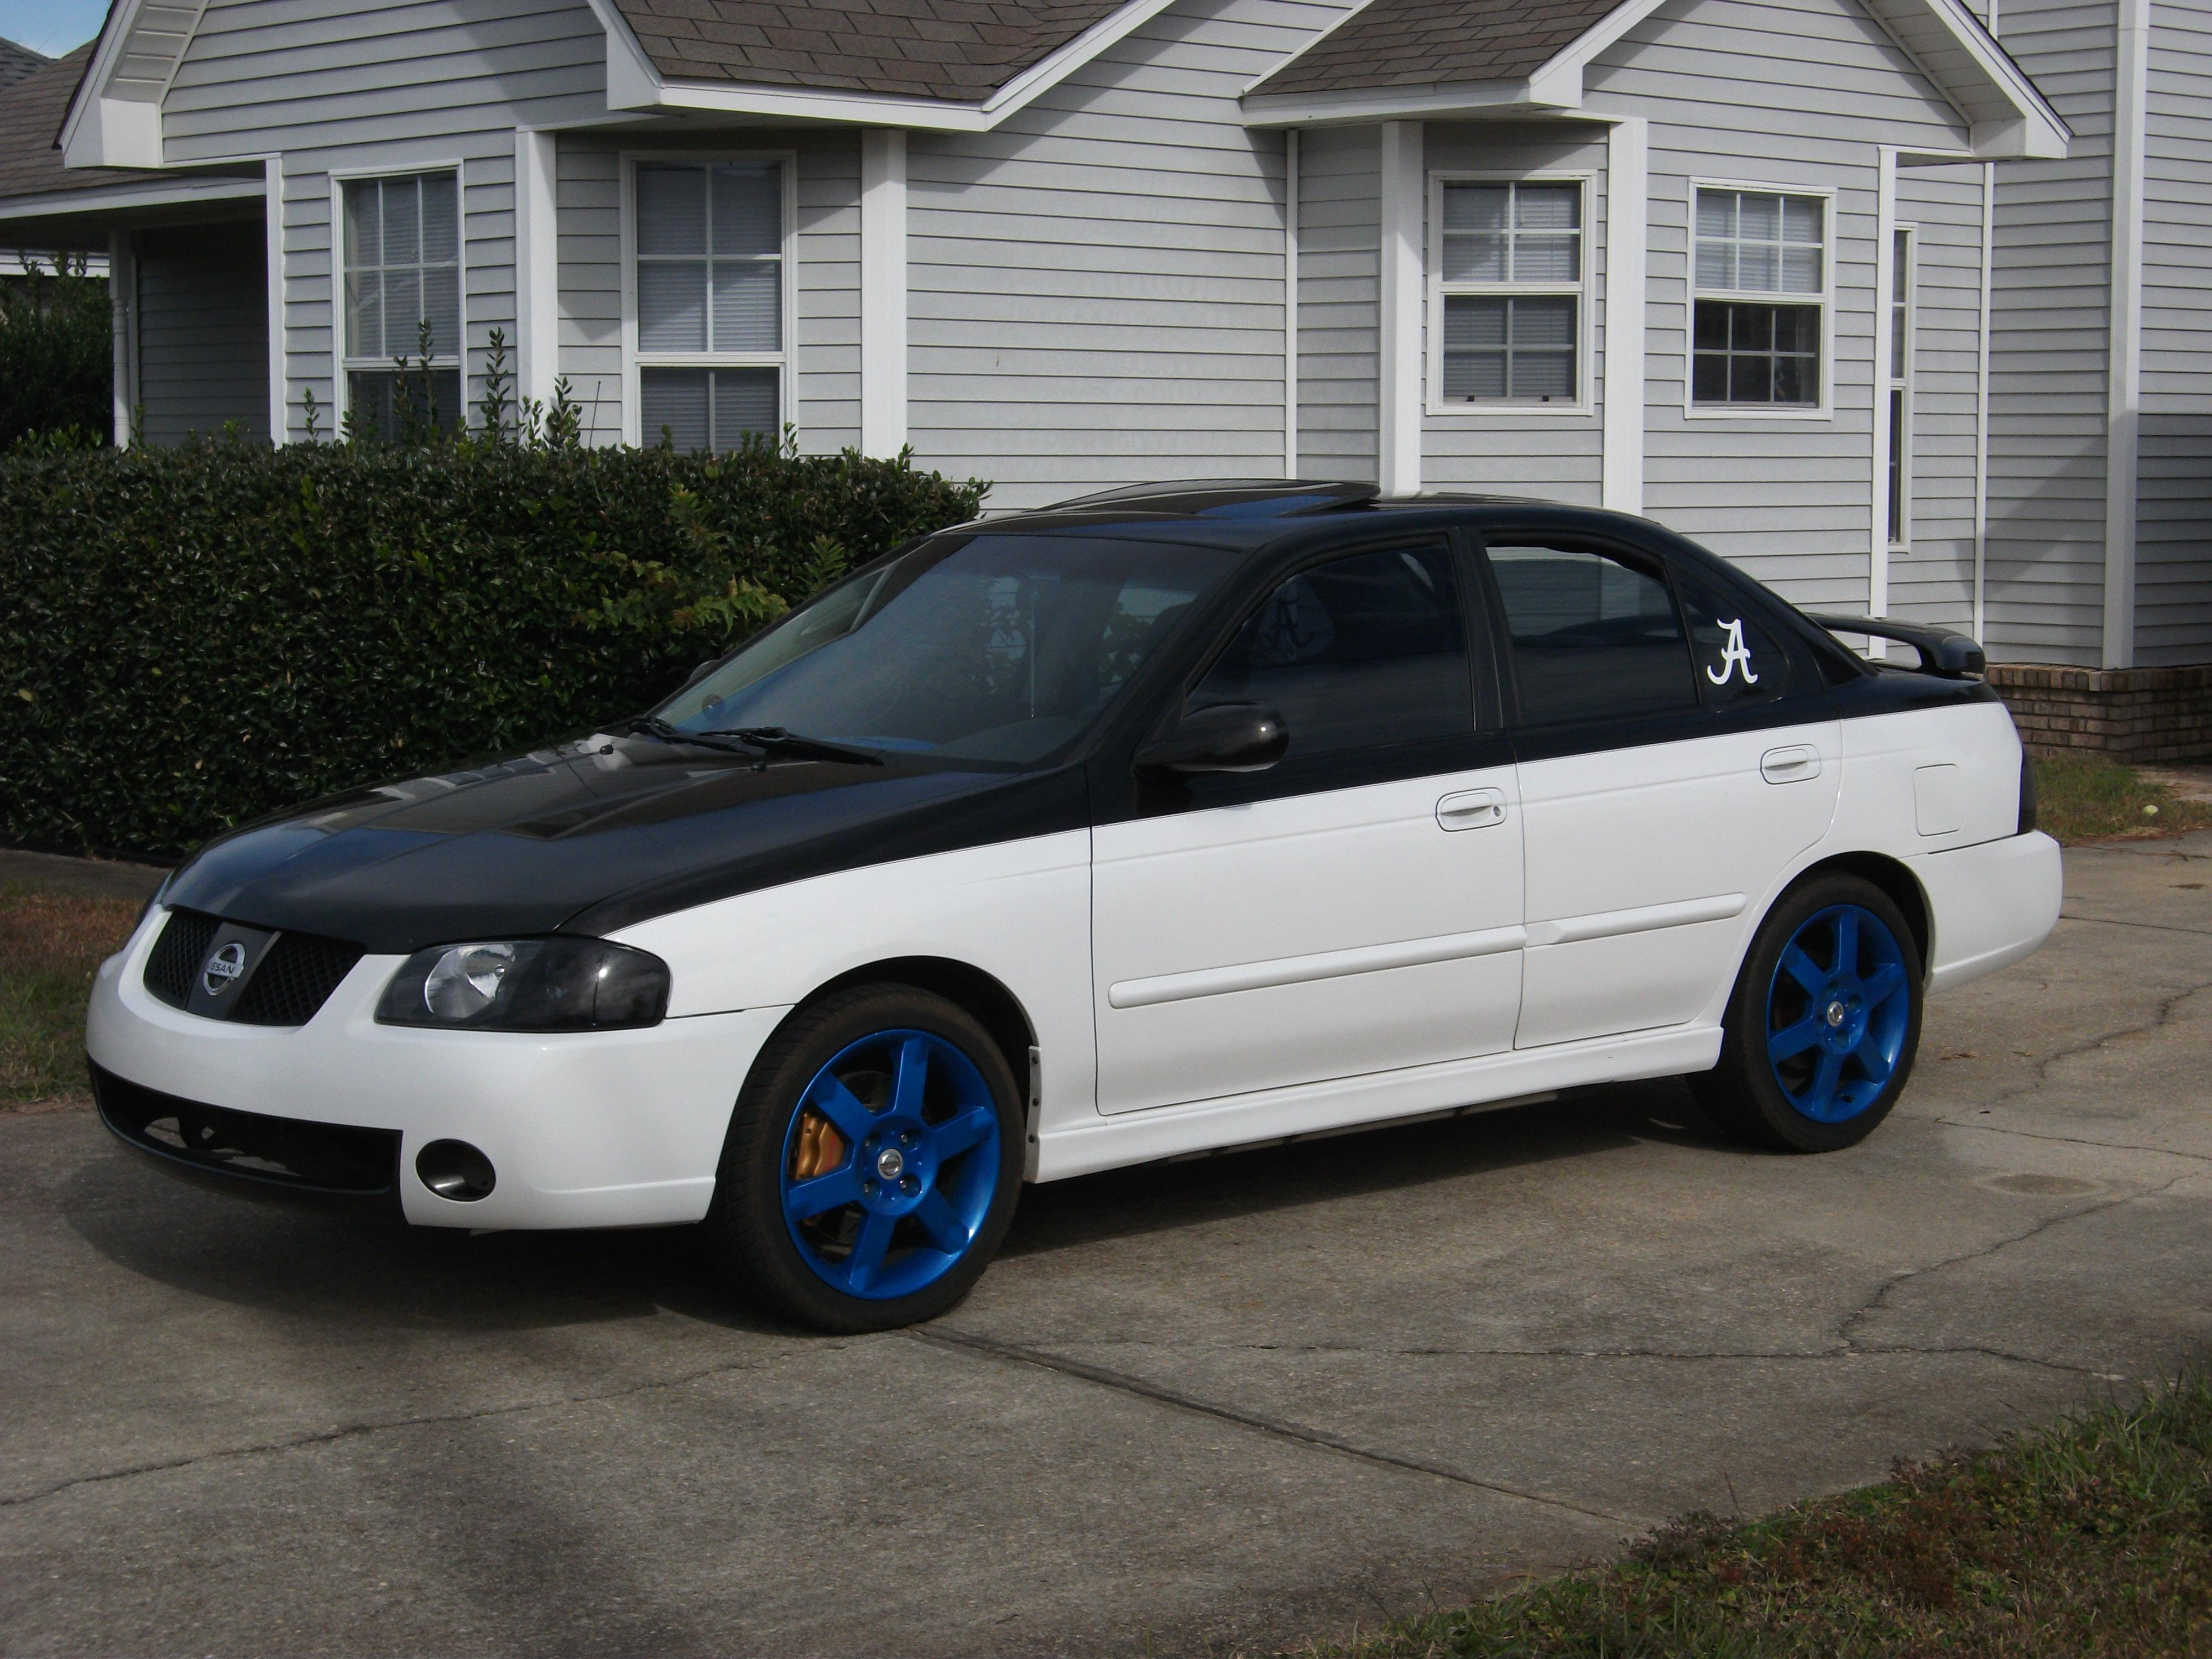 bronson04specv 2004 nissan sentra specs, photos, modification info